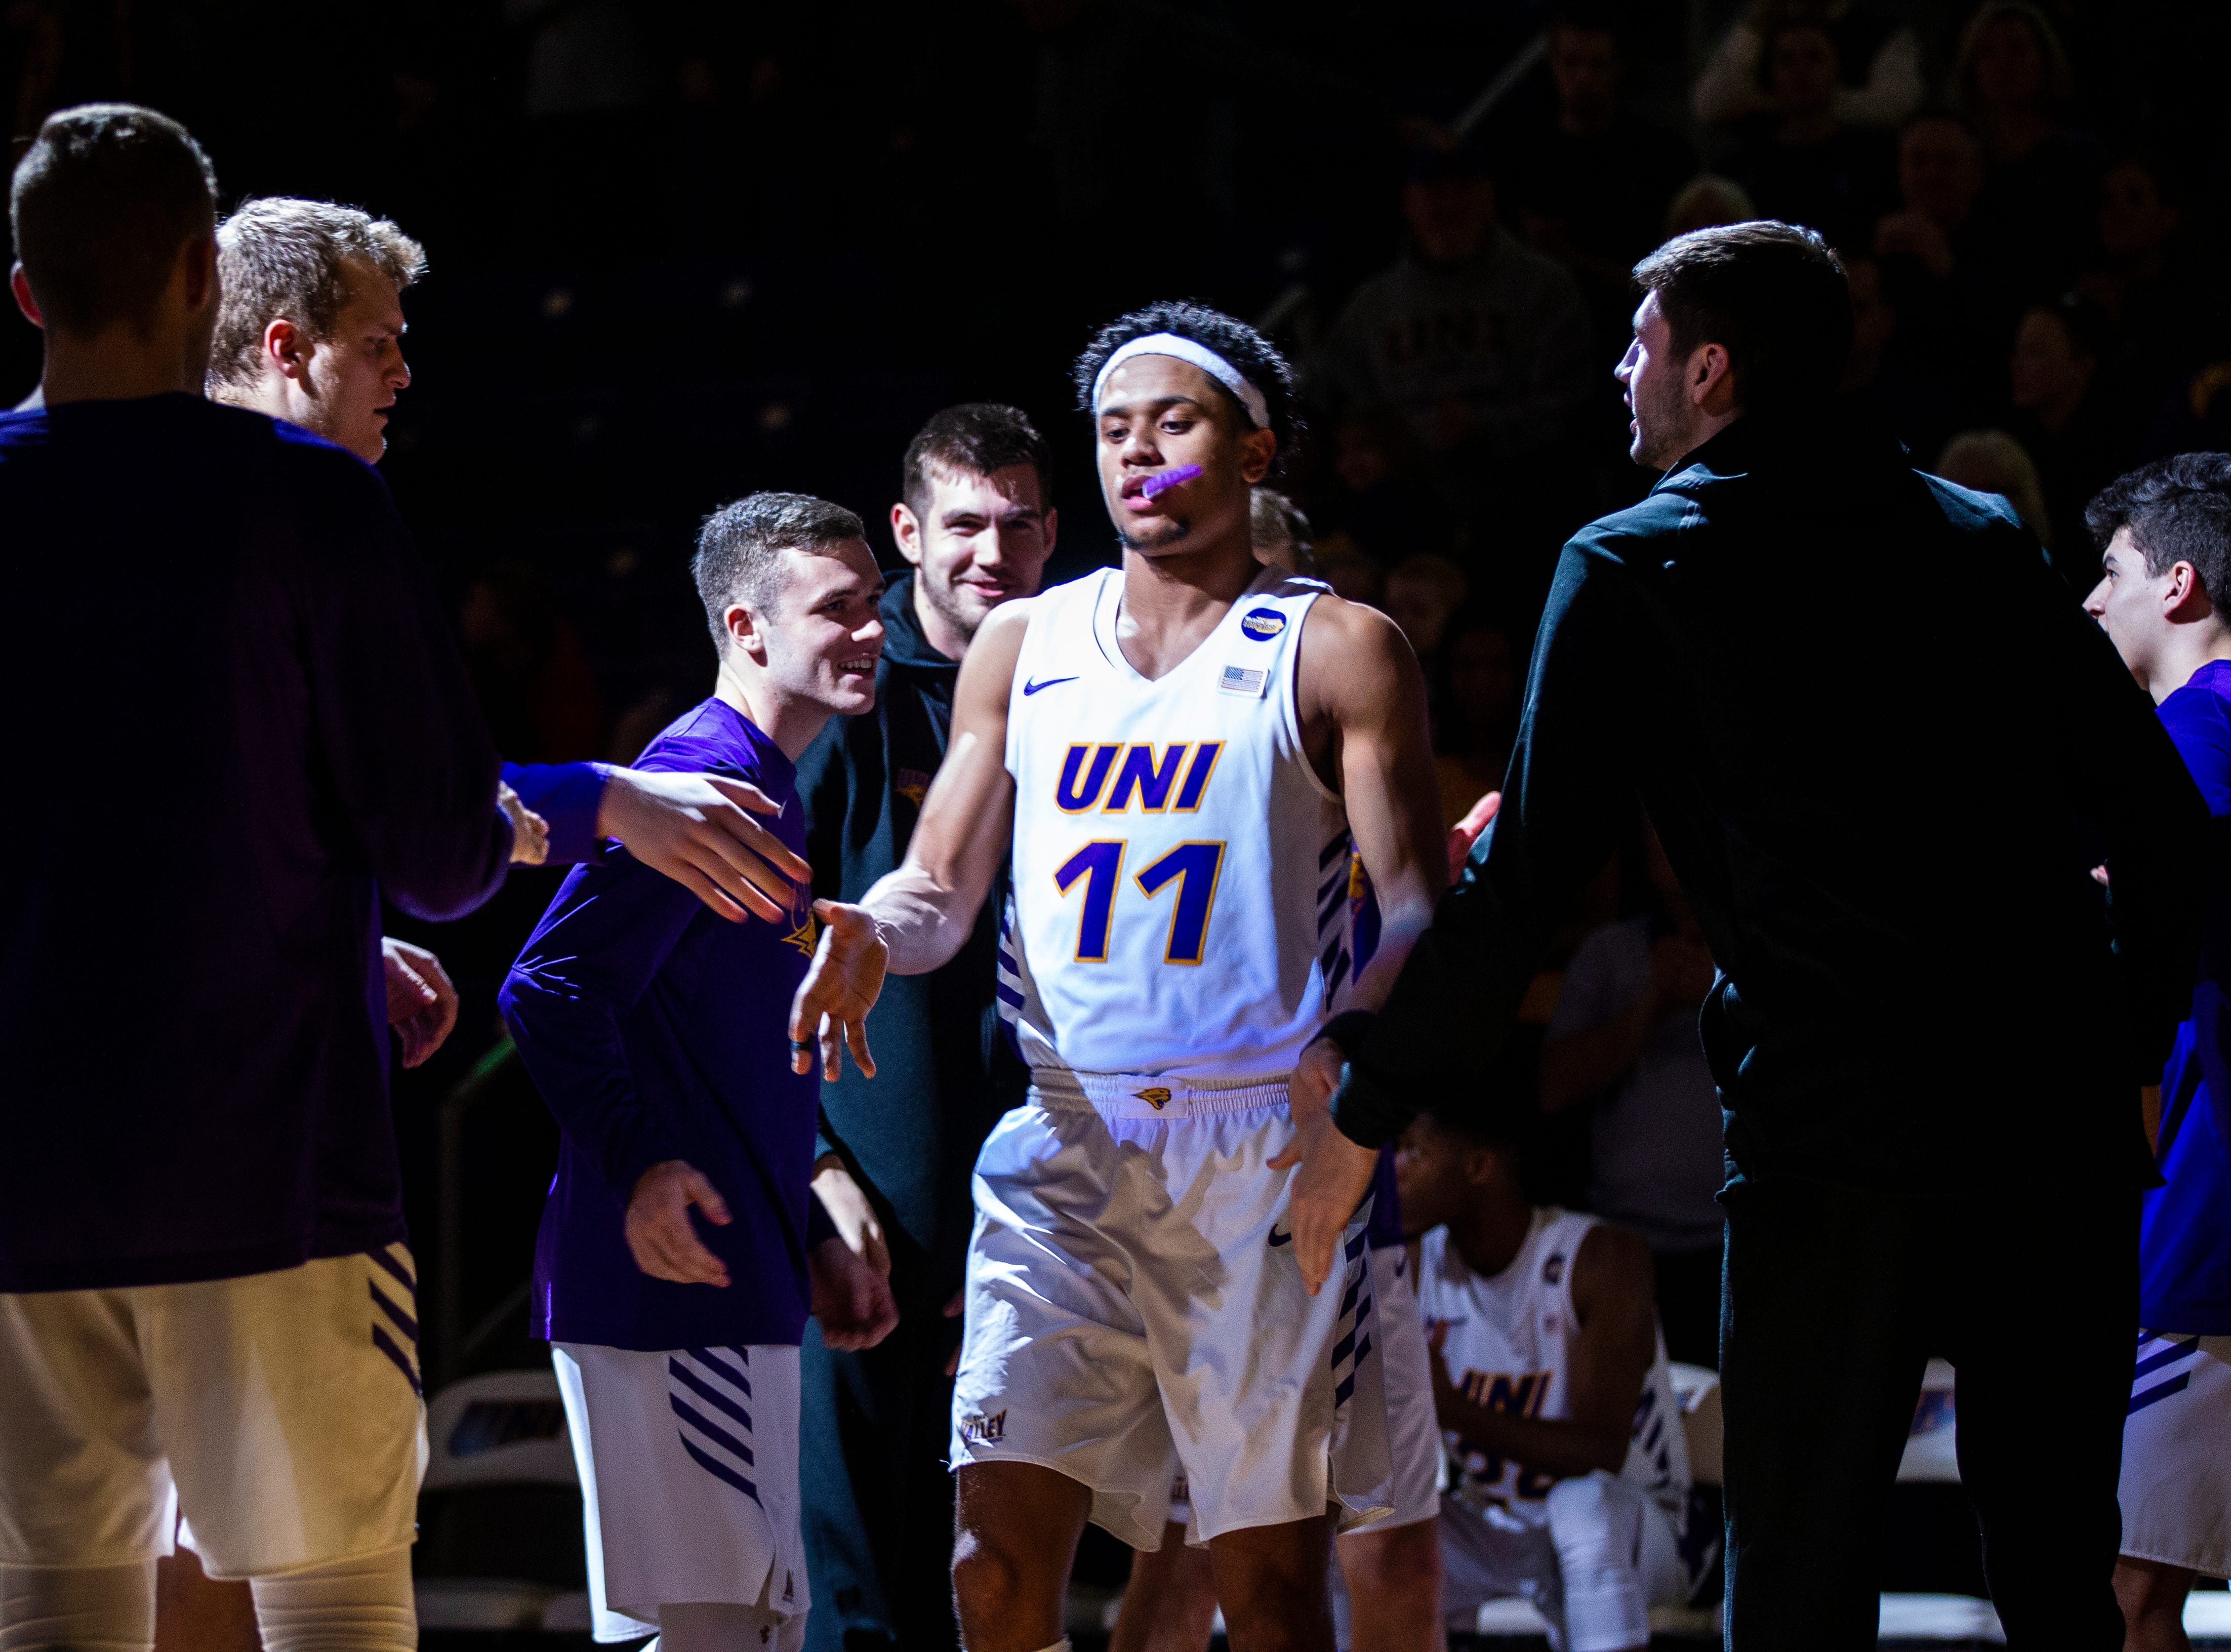 Northern Iowa guard Trae Berhow (11) gets introduced during a NCAA Missouri Valley Conference men's basketball game on Saturday, Jan. 5, 2019, at the McLeod Center in Cedar Falls, Iowa.